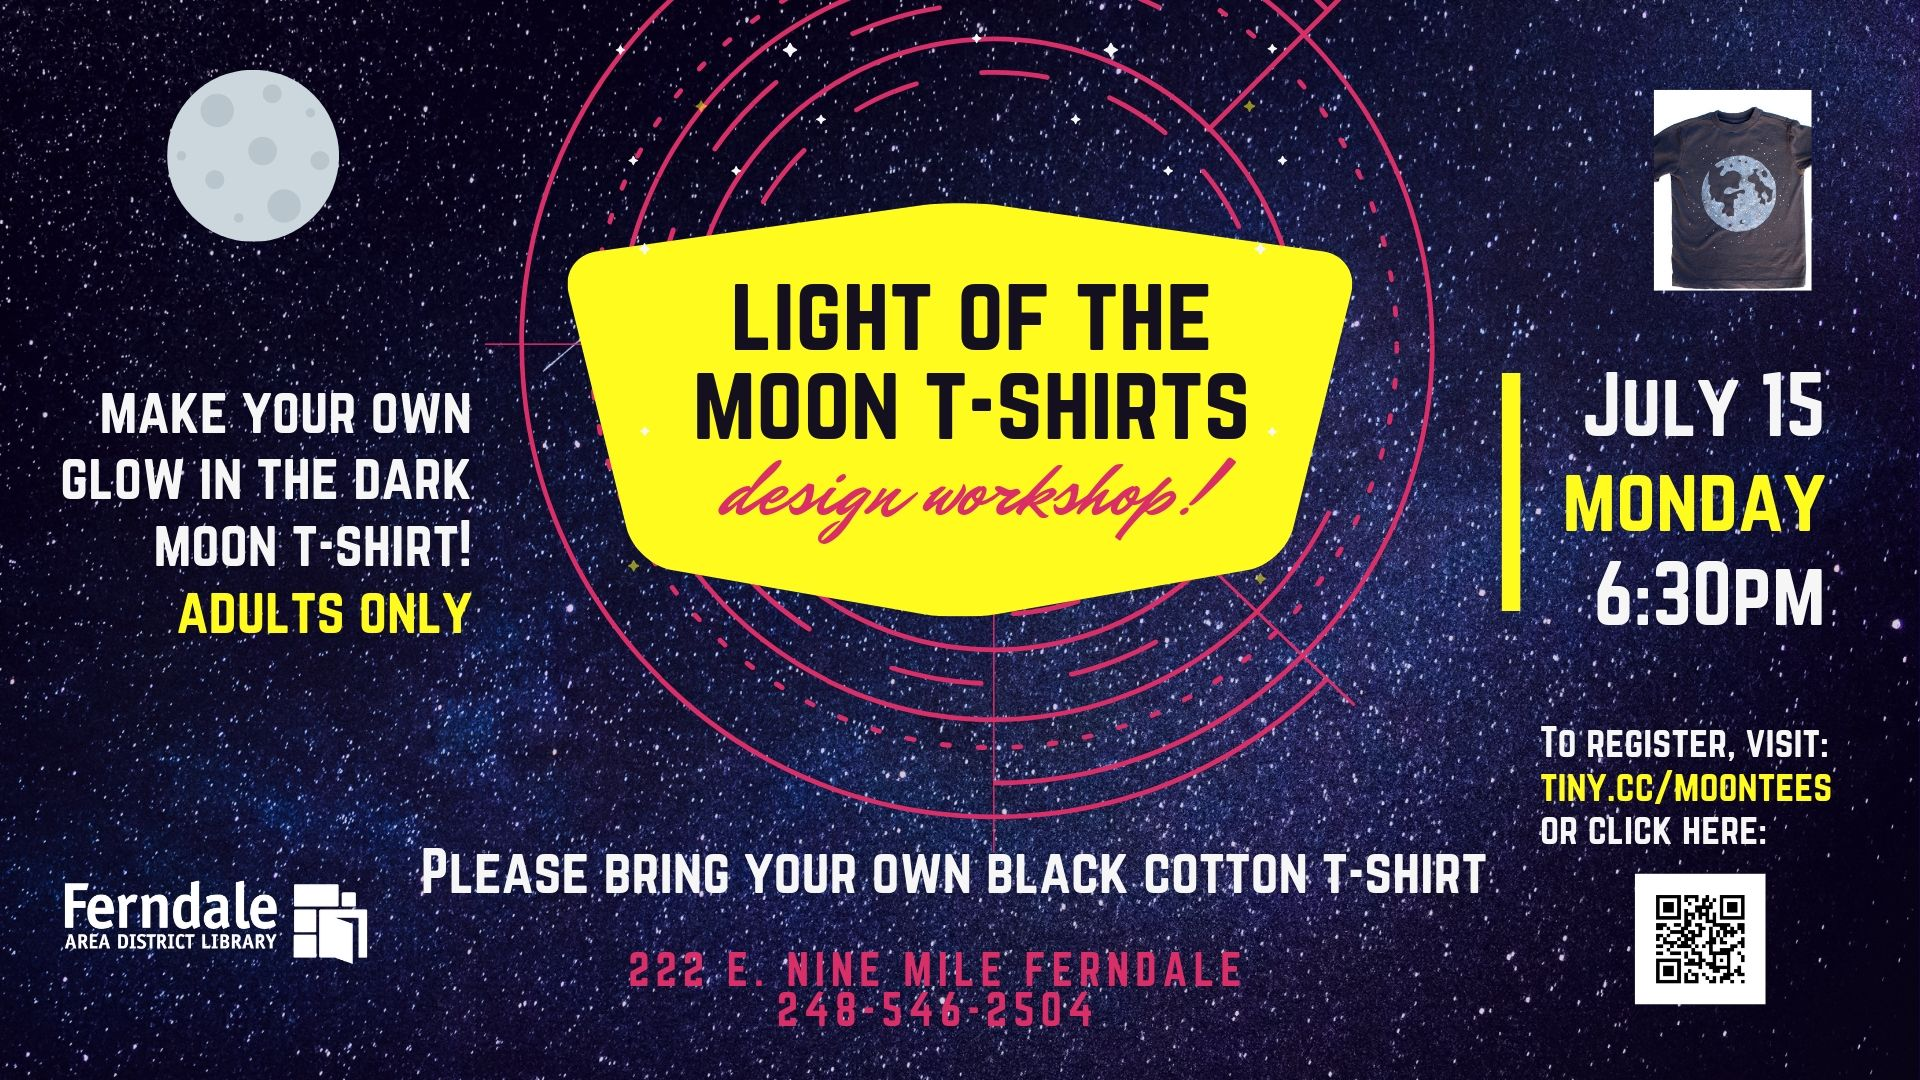 Summer Reading: Light of the Moon T-Shirt Workshop